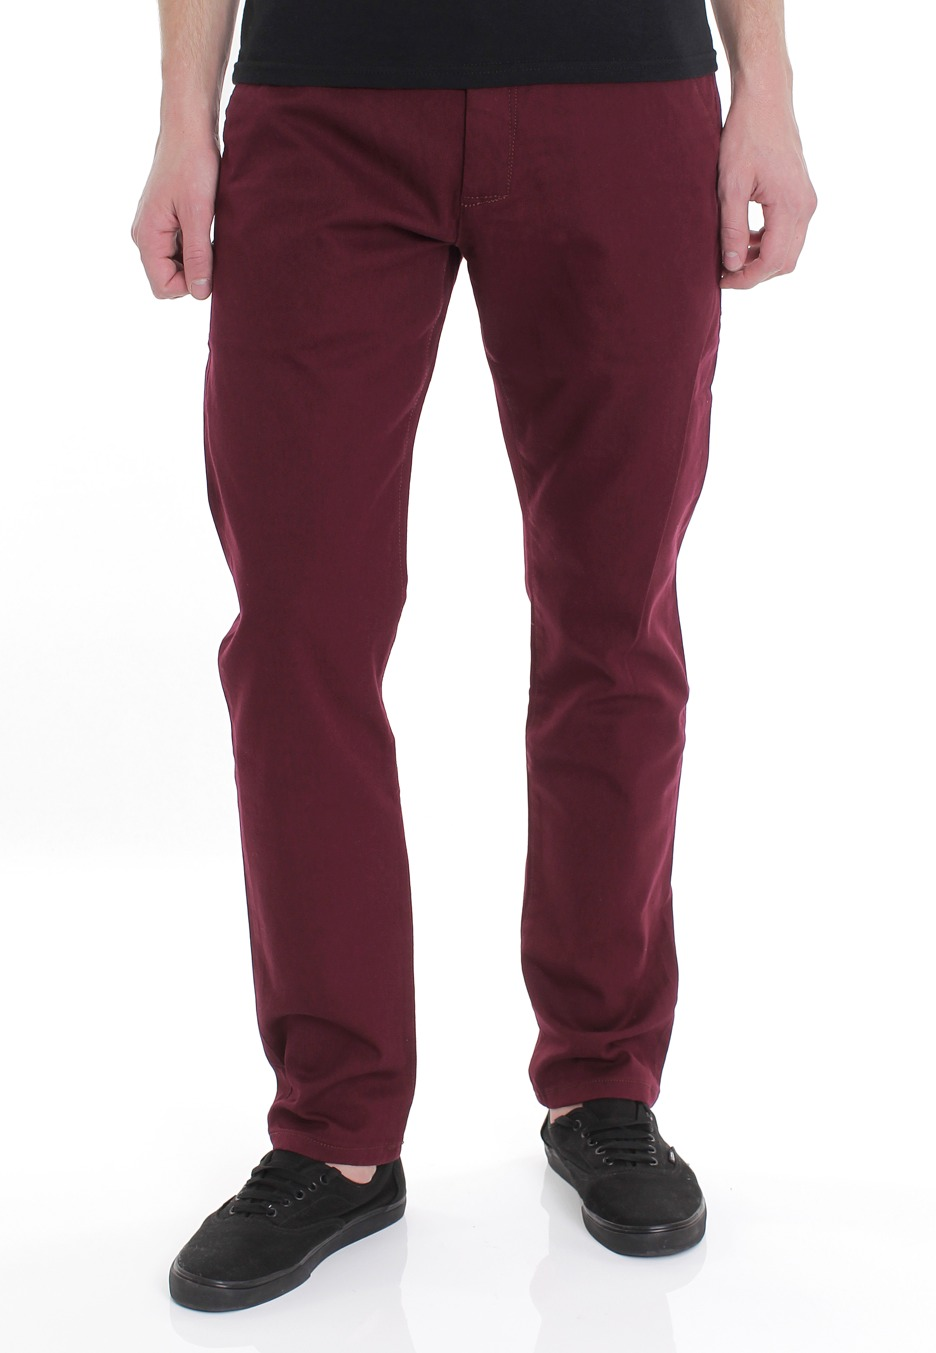 REELL - Slim Stretch Chino Wine Red - Jeans - Impericon.com Worldwide